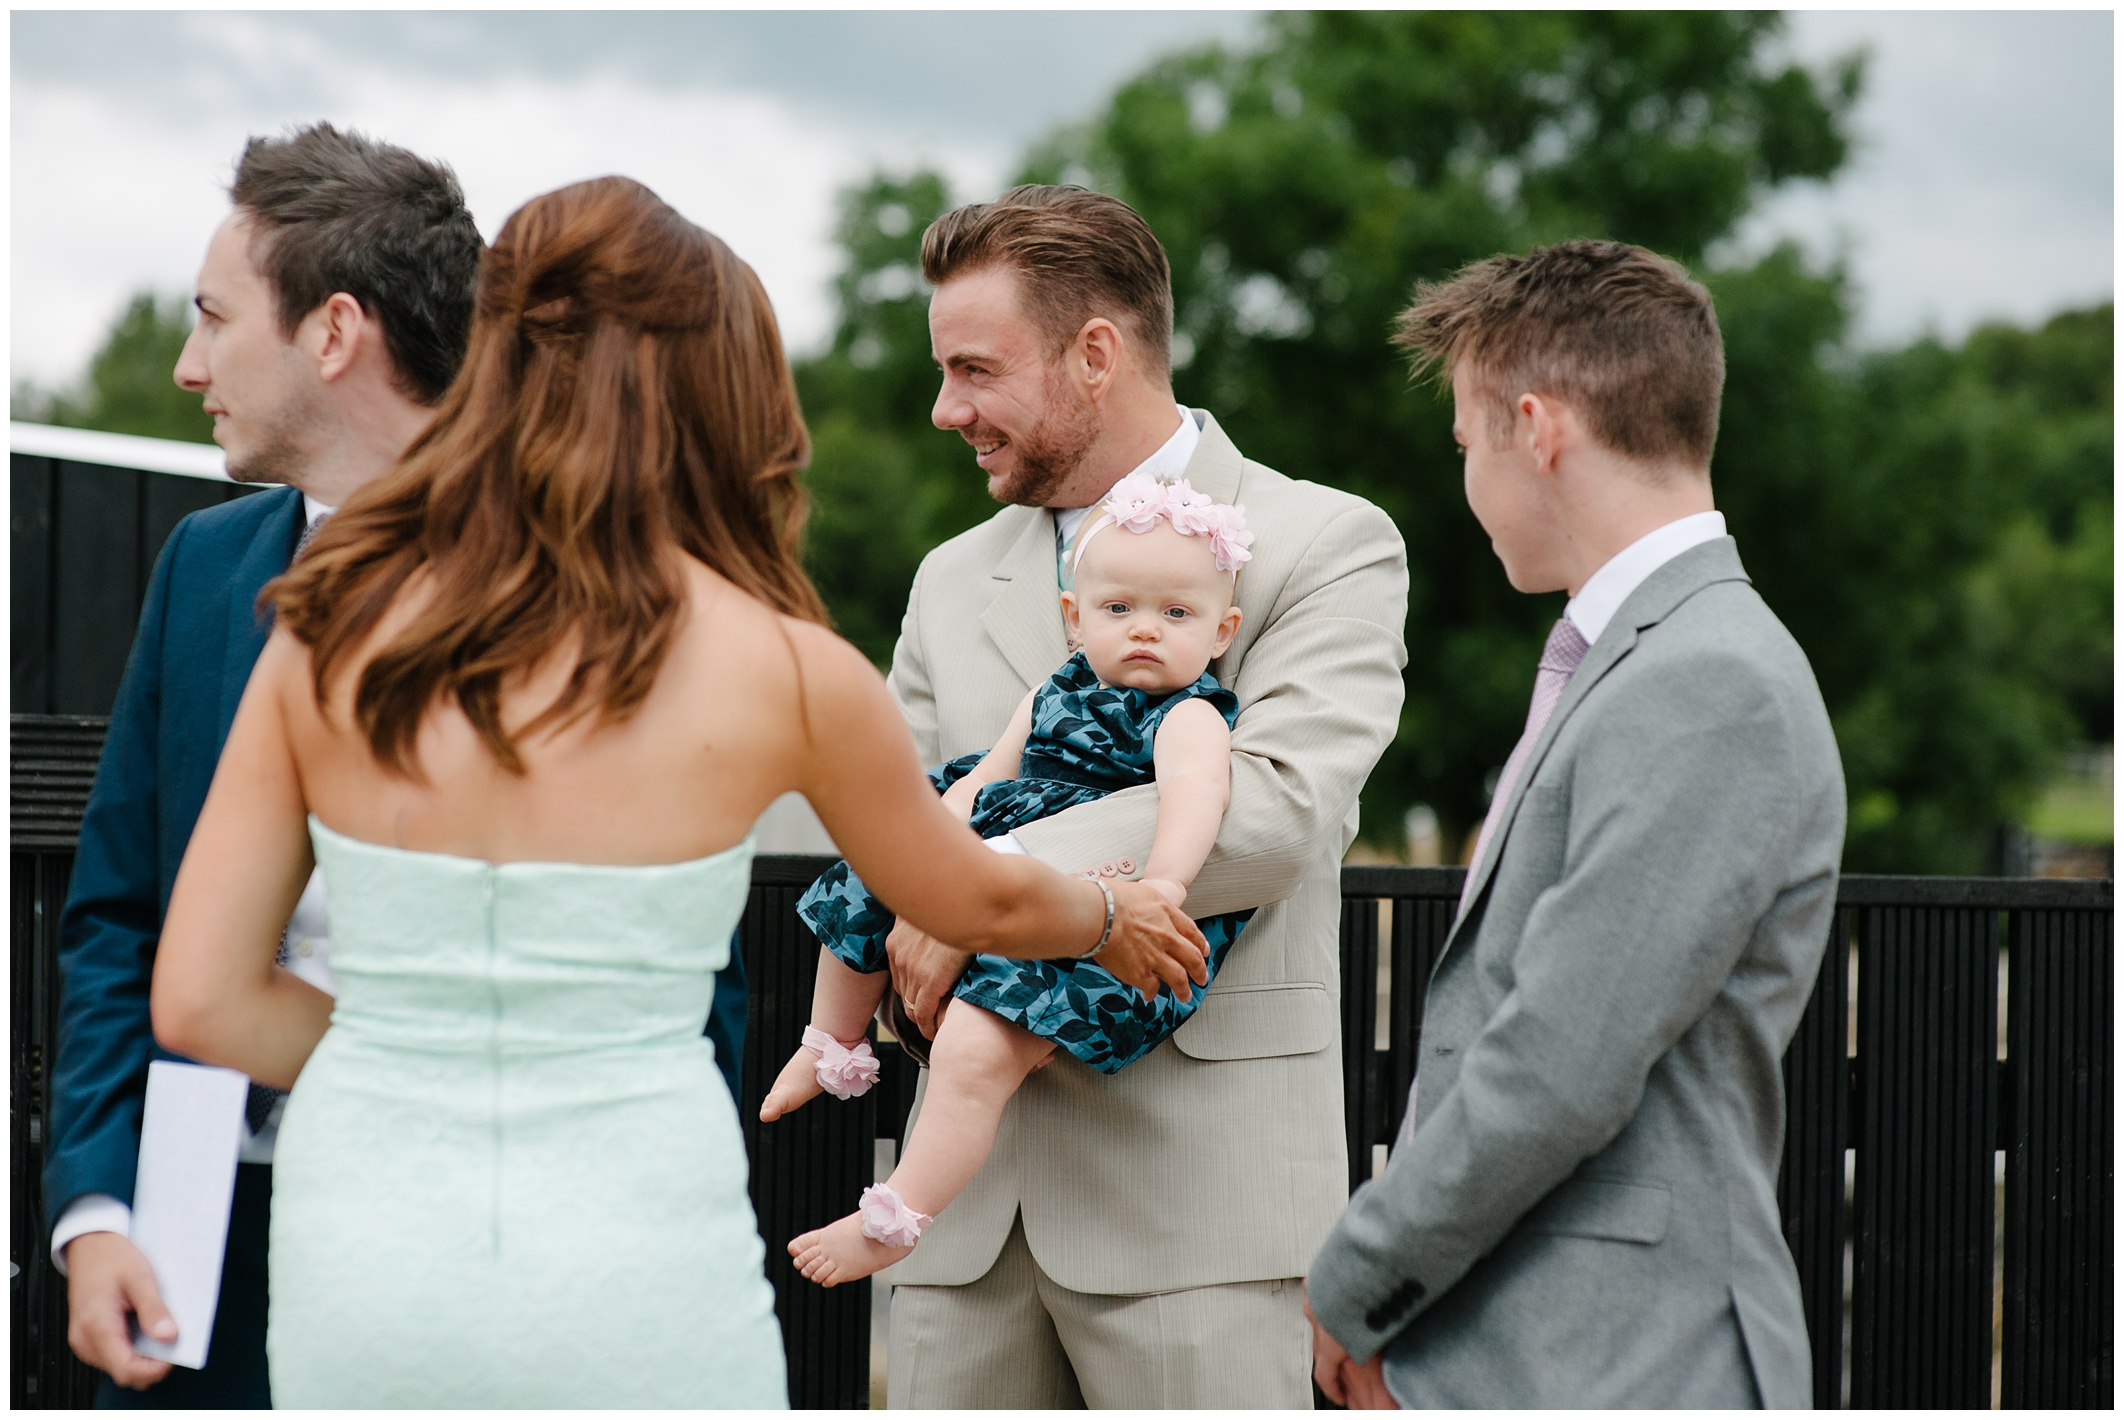 Lynsey_Andy_Rossharbour_Fermanagh_wedding_jude_browne_photography_0025.jpg